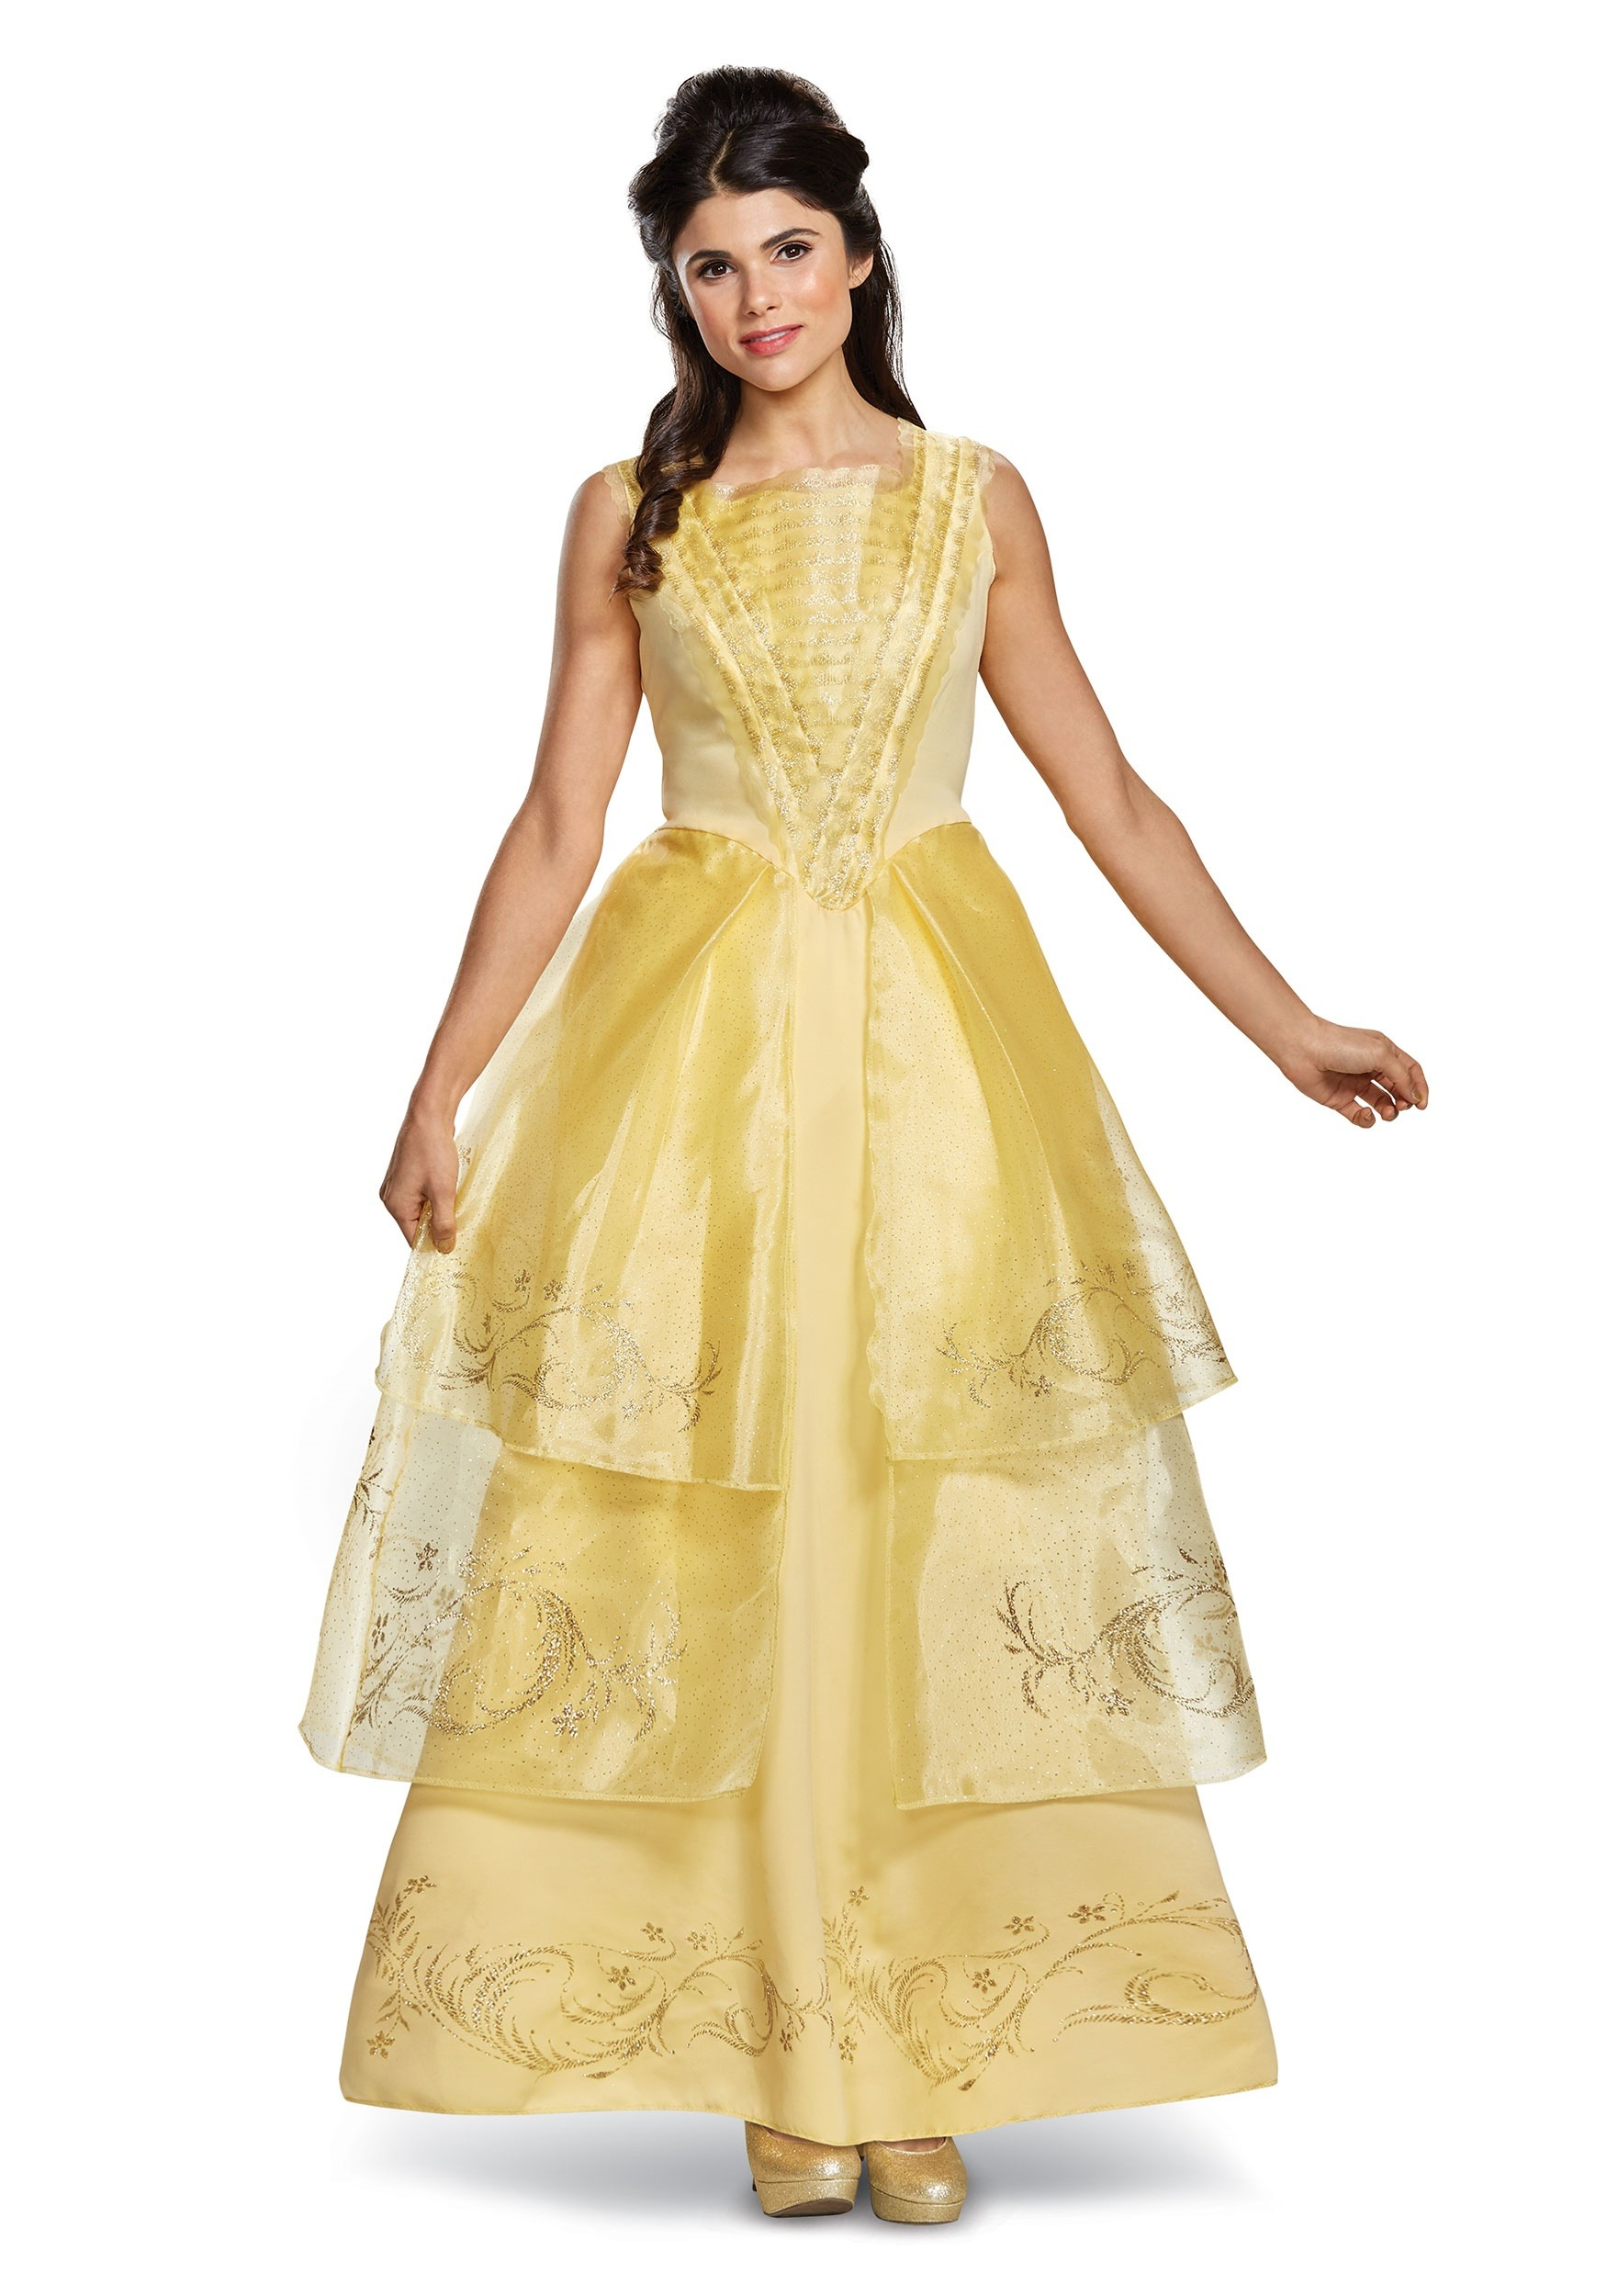 a724f8cae6daf Beauty and the Beast Costumes - Beast and Belle Costumes